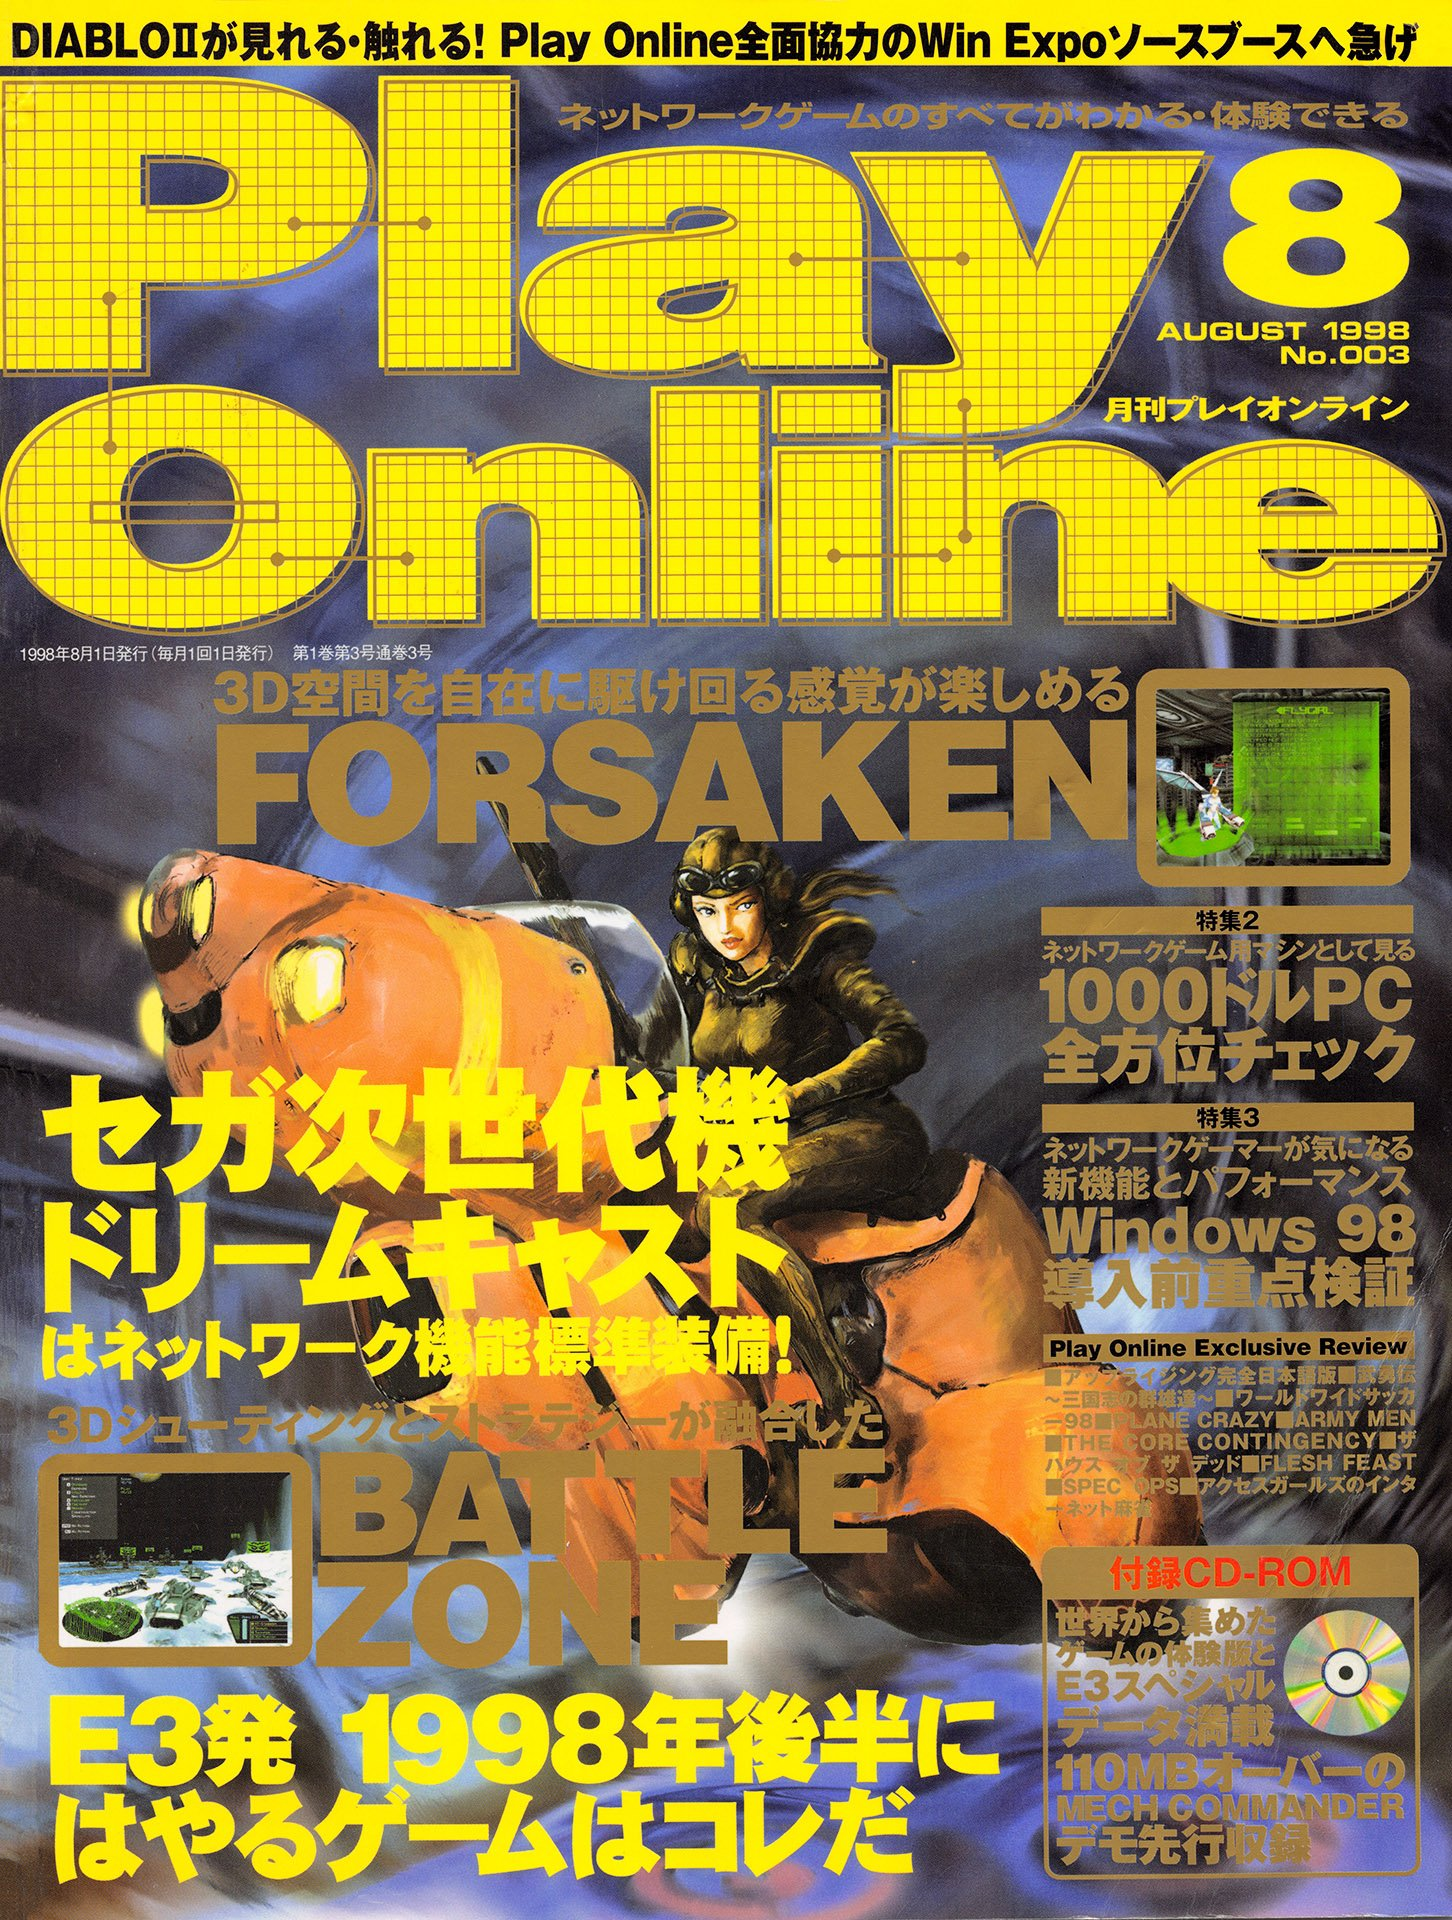 Play Online No.003 (August 1998)